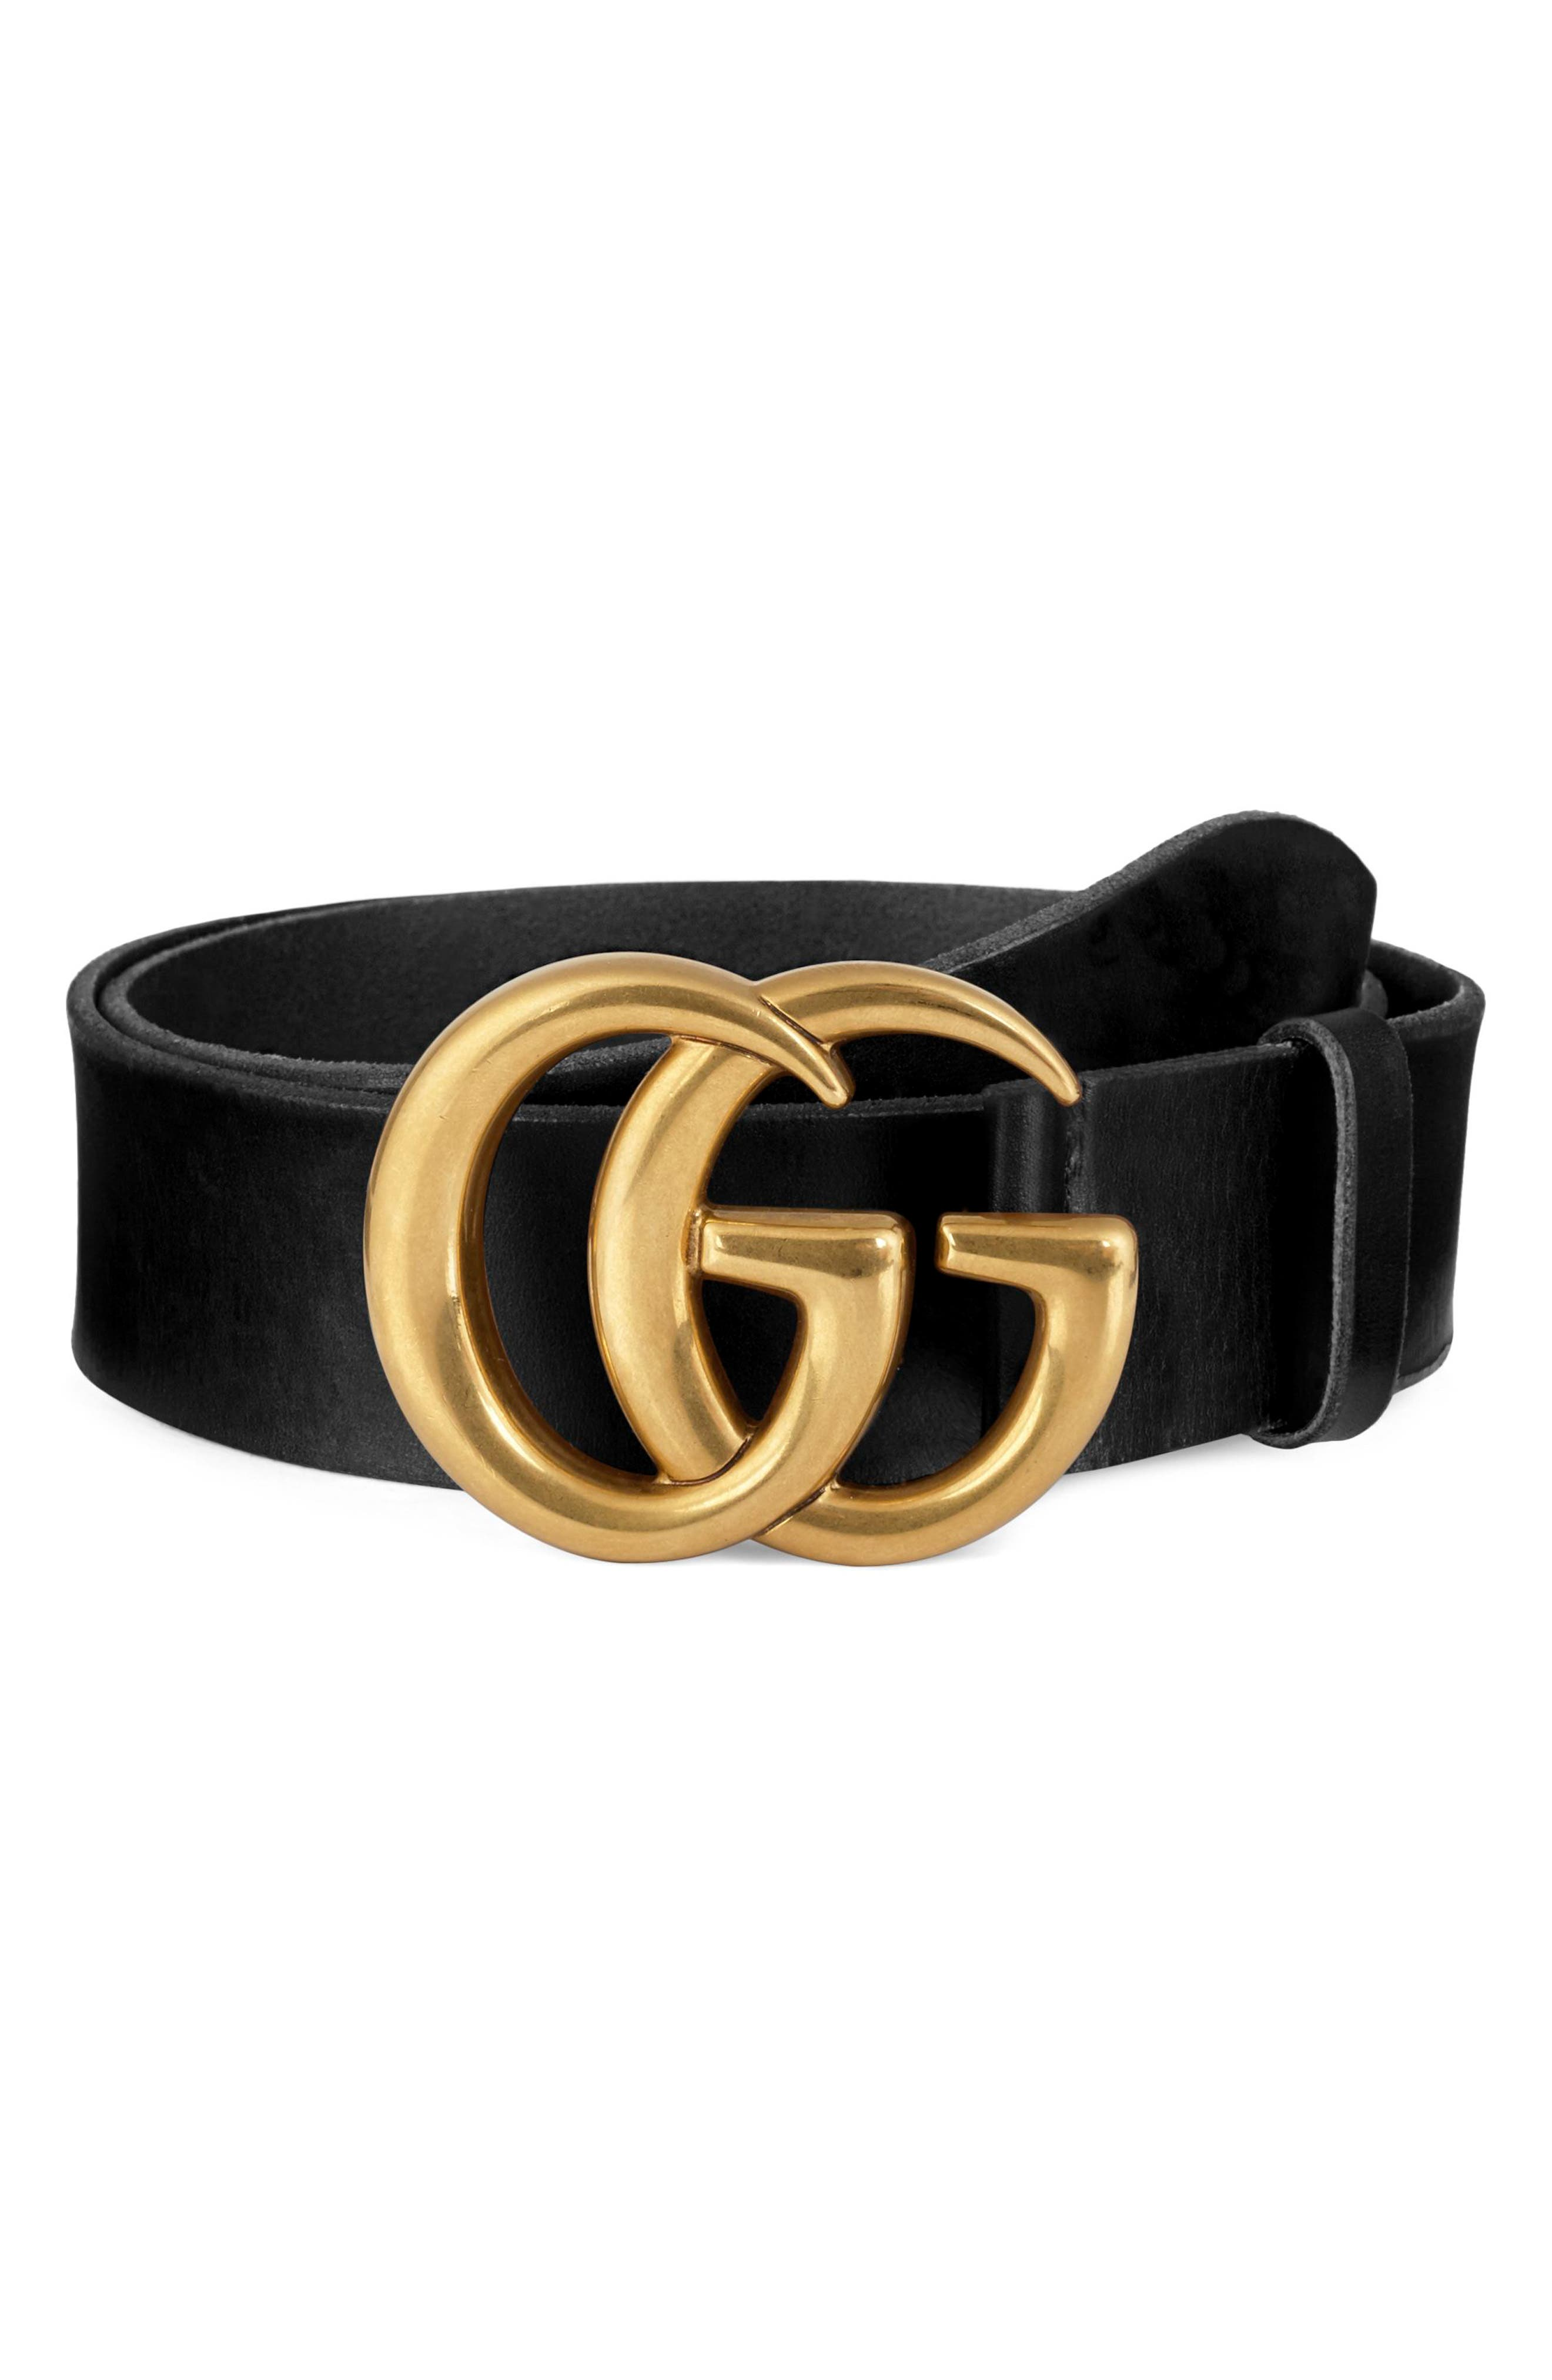 Running Gold Leather Belt,                         Main,                         color, 001